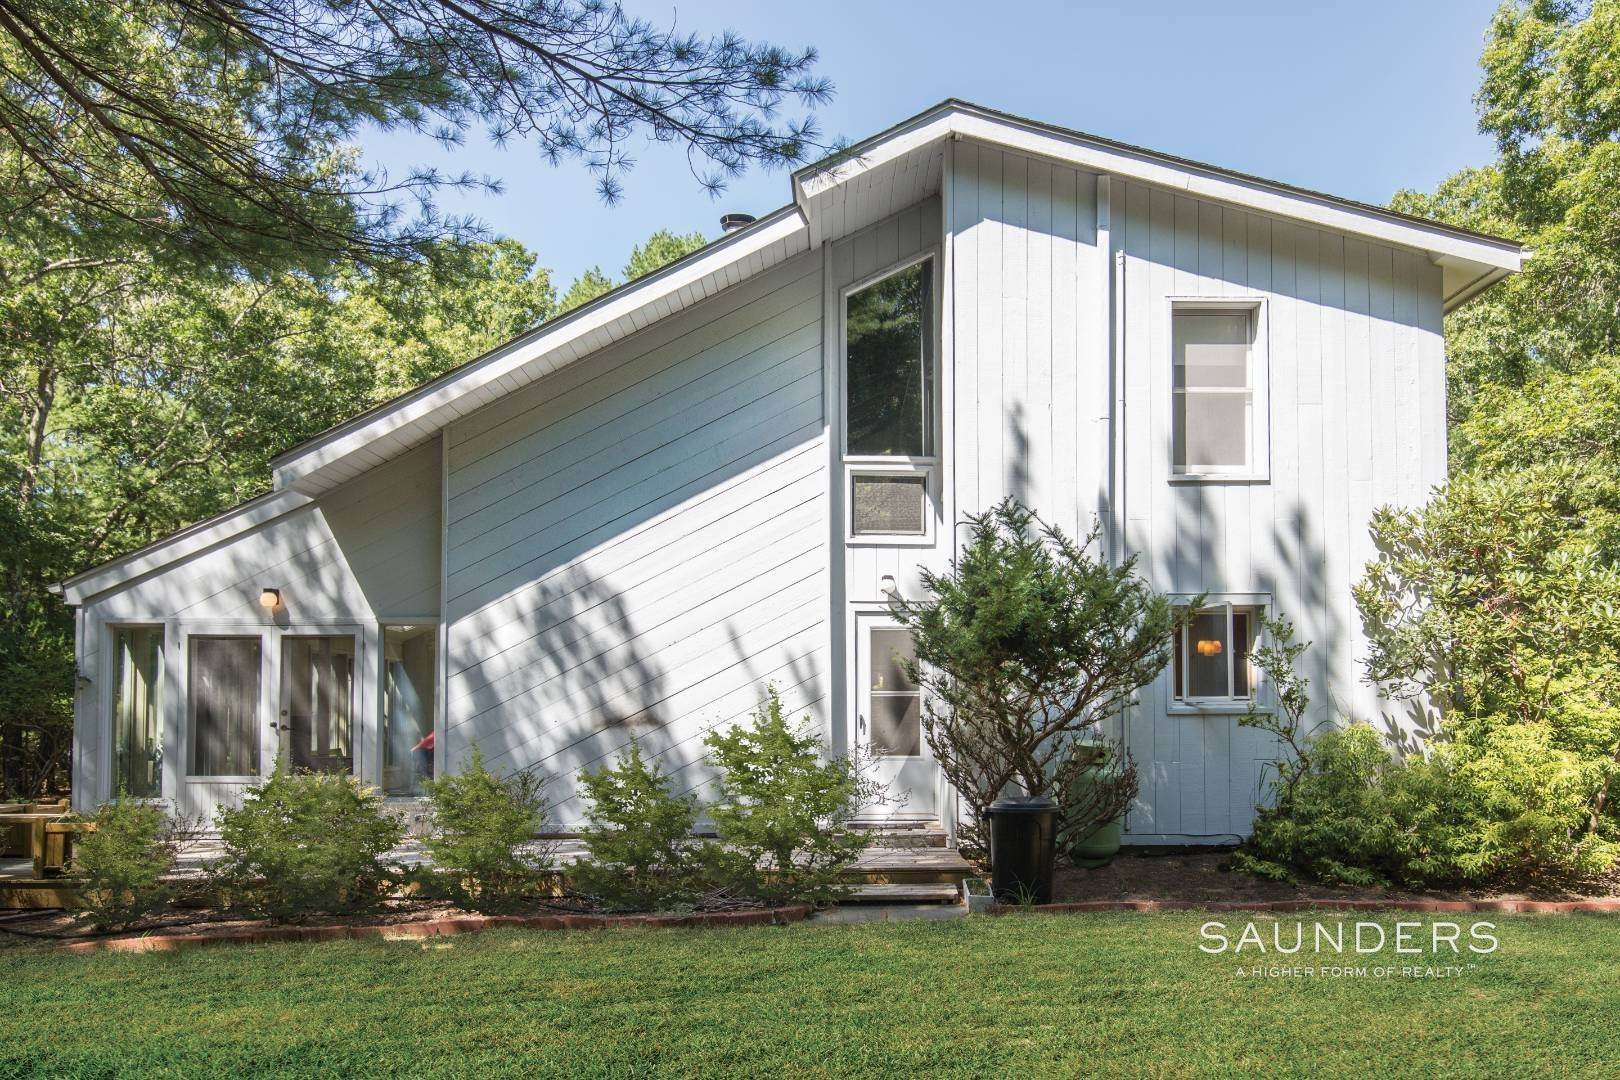 Single Family Homes for Sale at Bull Path Opportunity 112 Bull Path, East Hampton, East Hampton Town, NY 11937